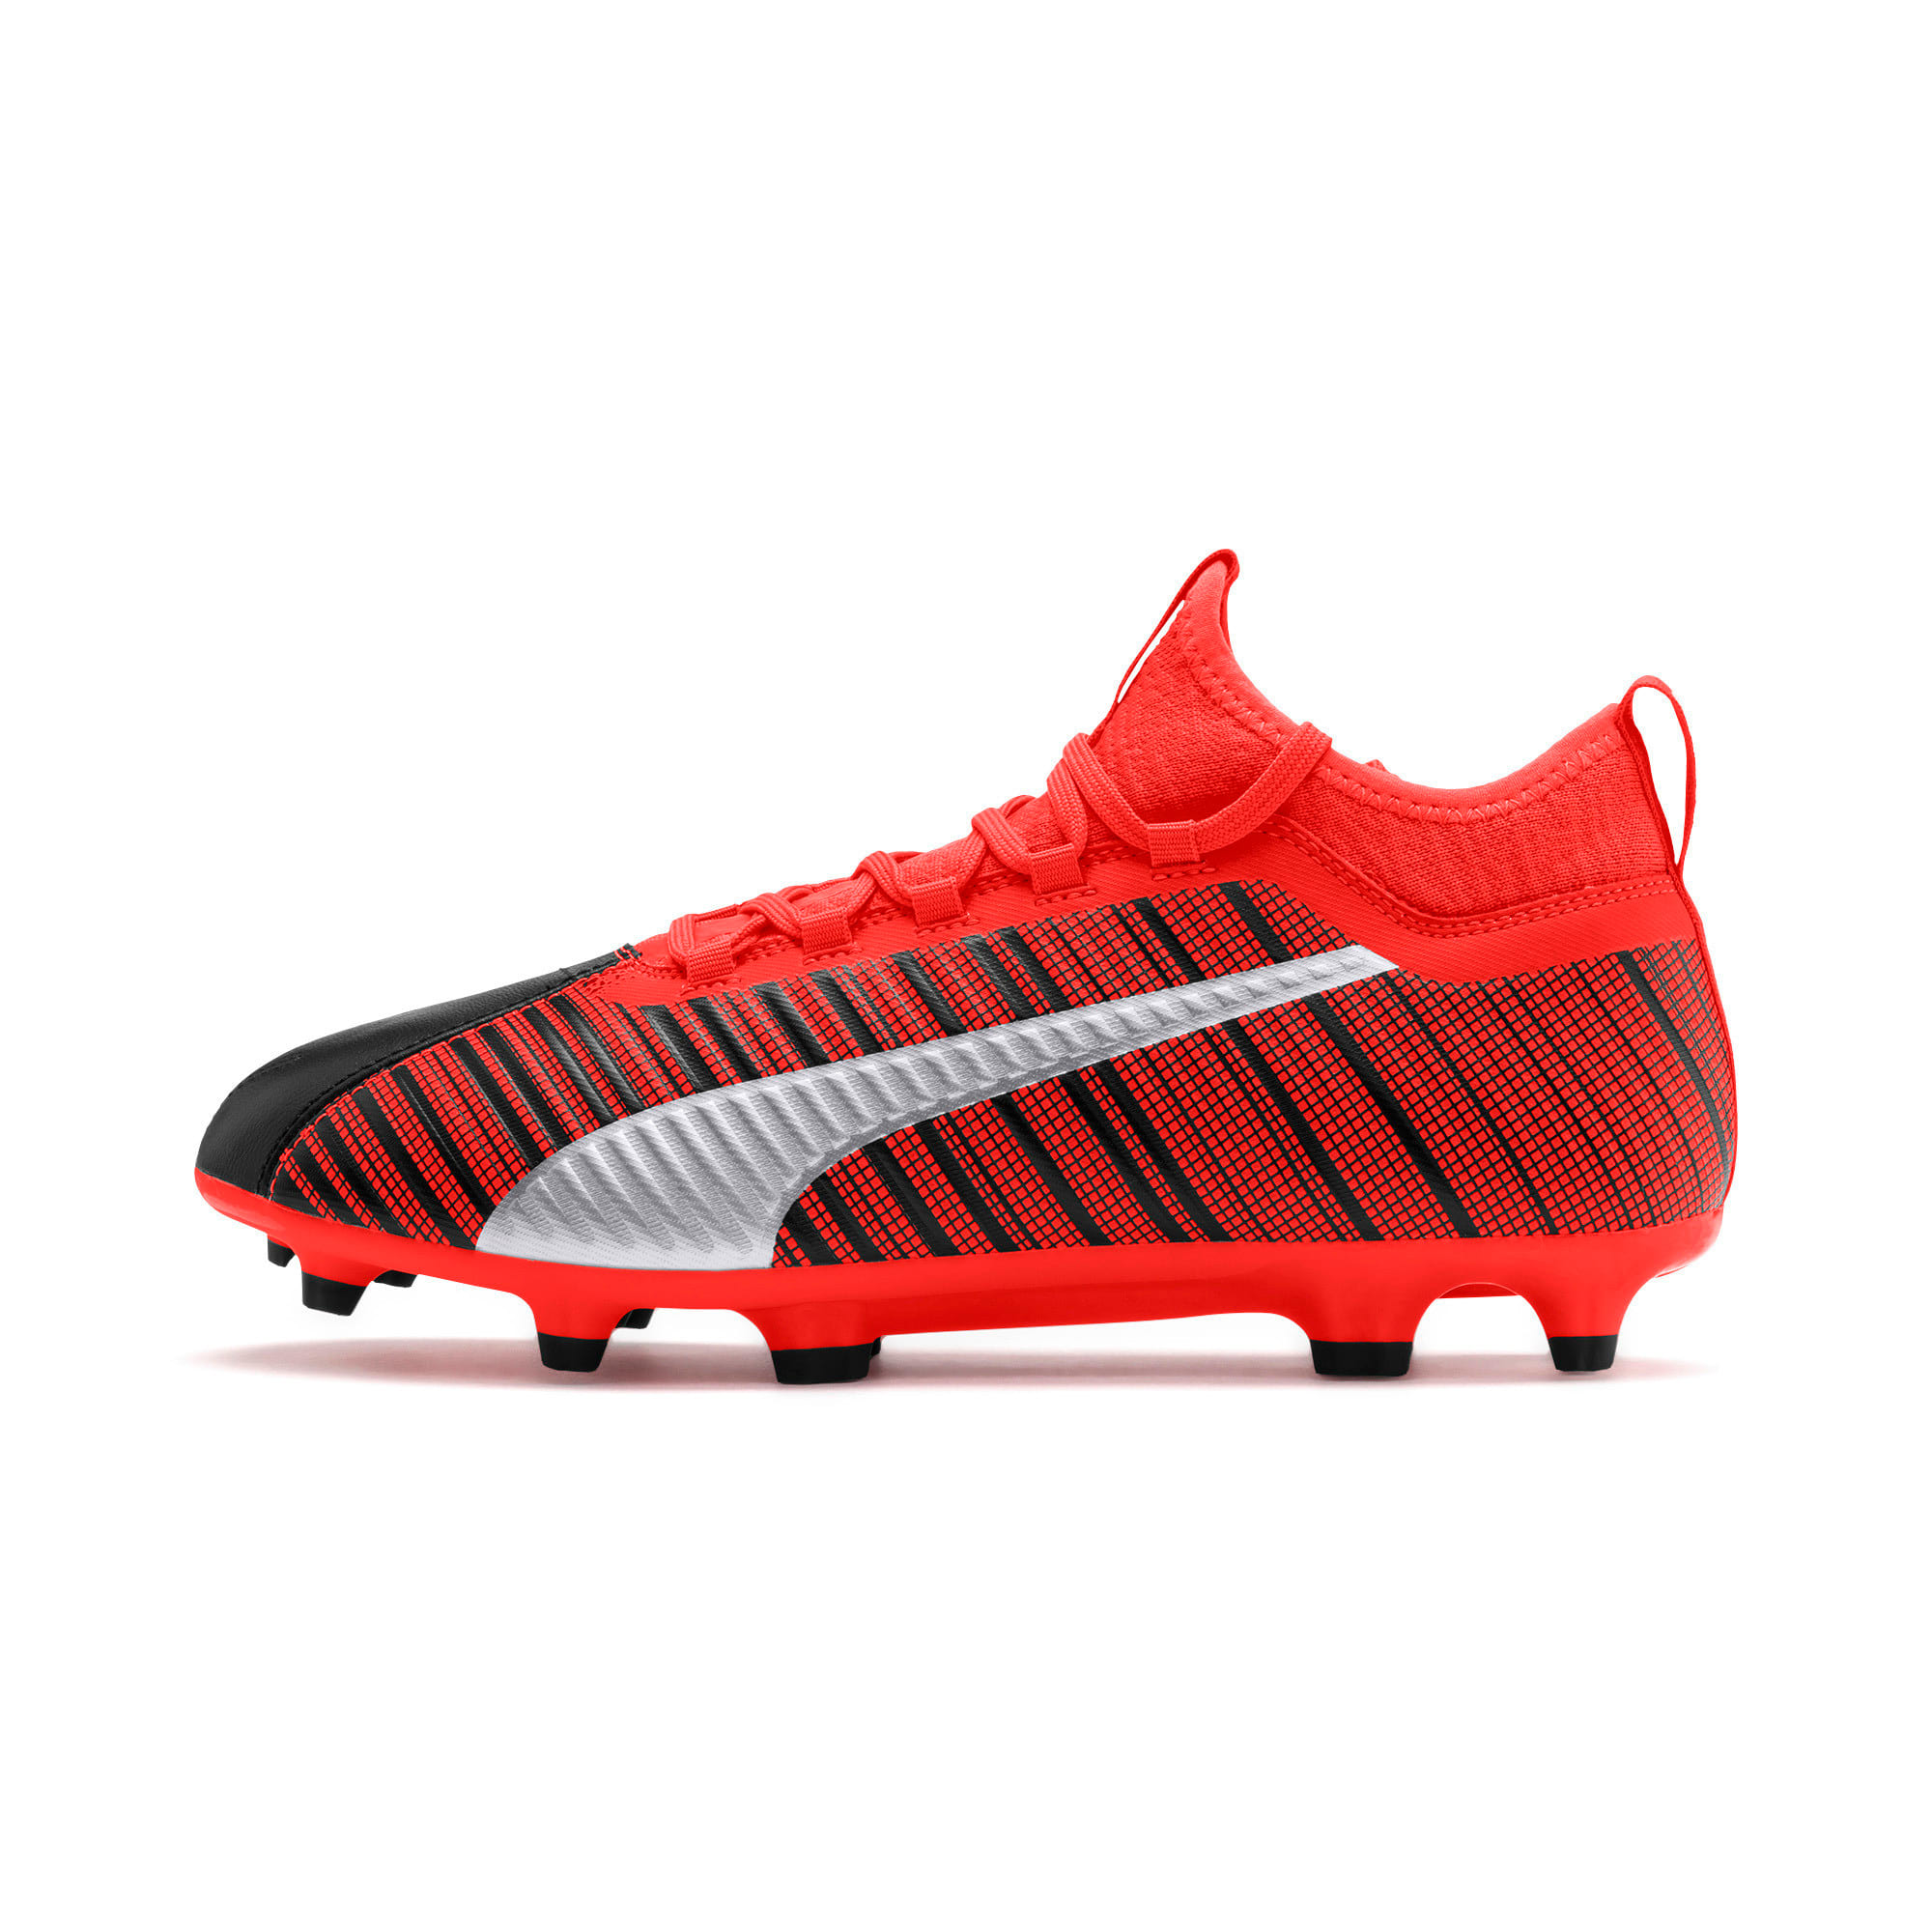 Thumbnail 1 of PUMA ONE 5.3 FG/AG Men's Football Boots, Black-Nrgy Red-Aged Silver, medium